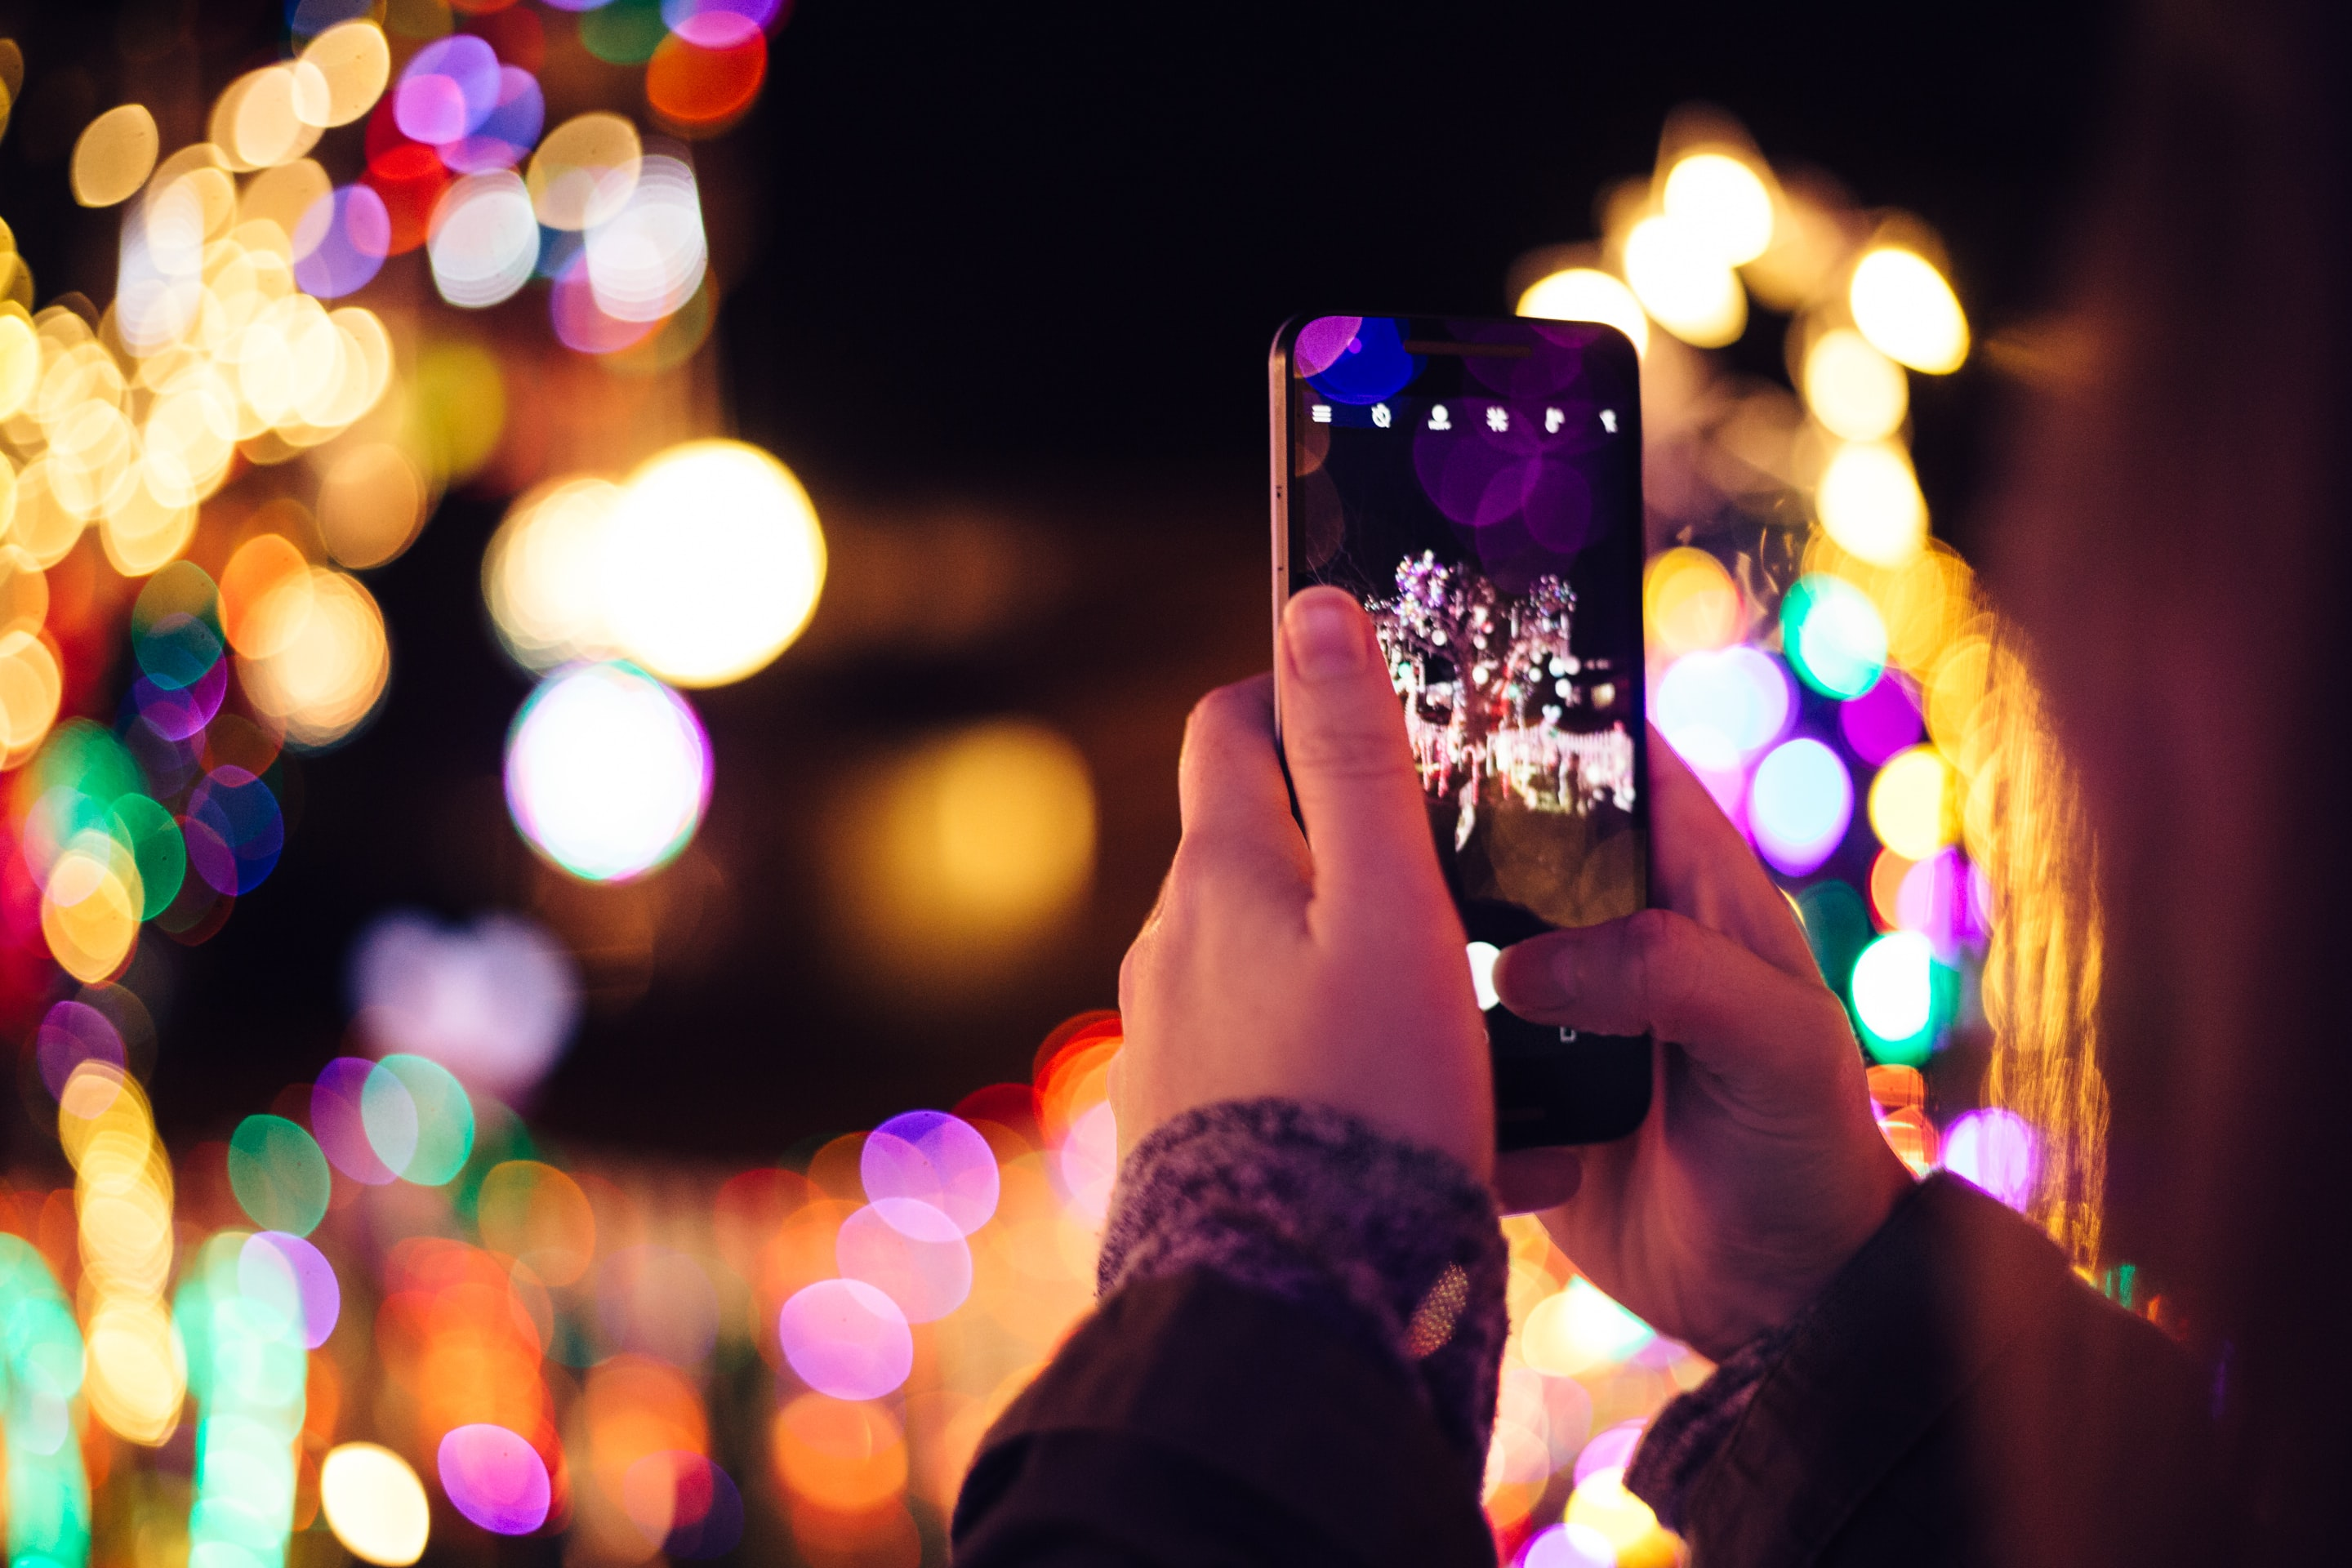 person taking photo of lights during nightime